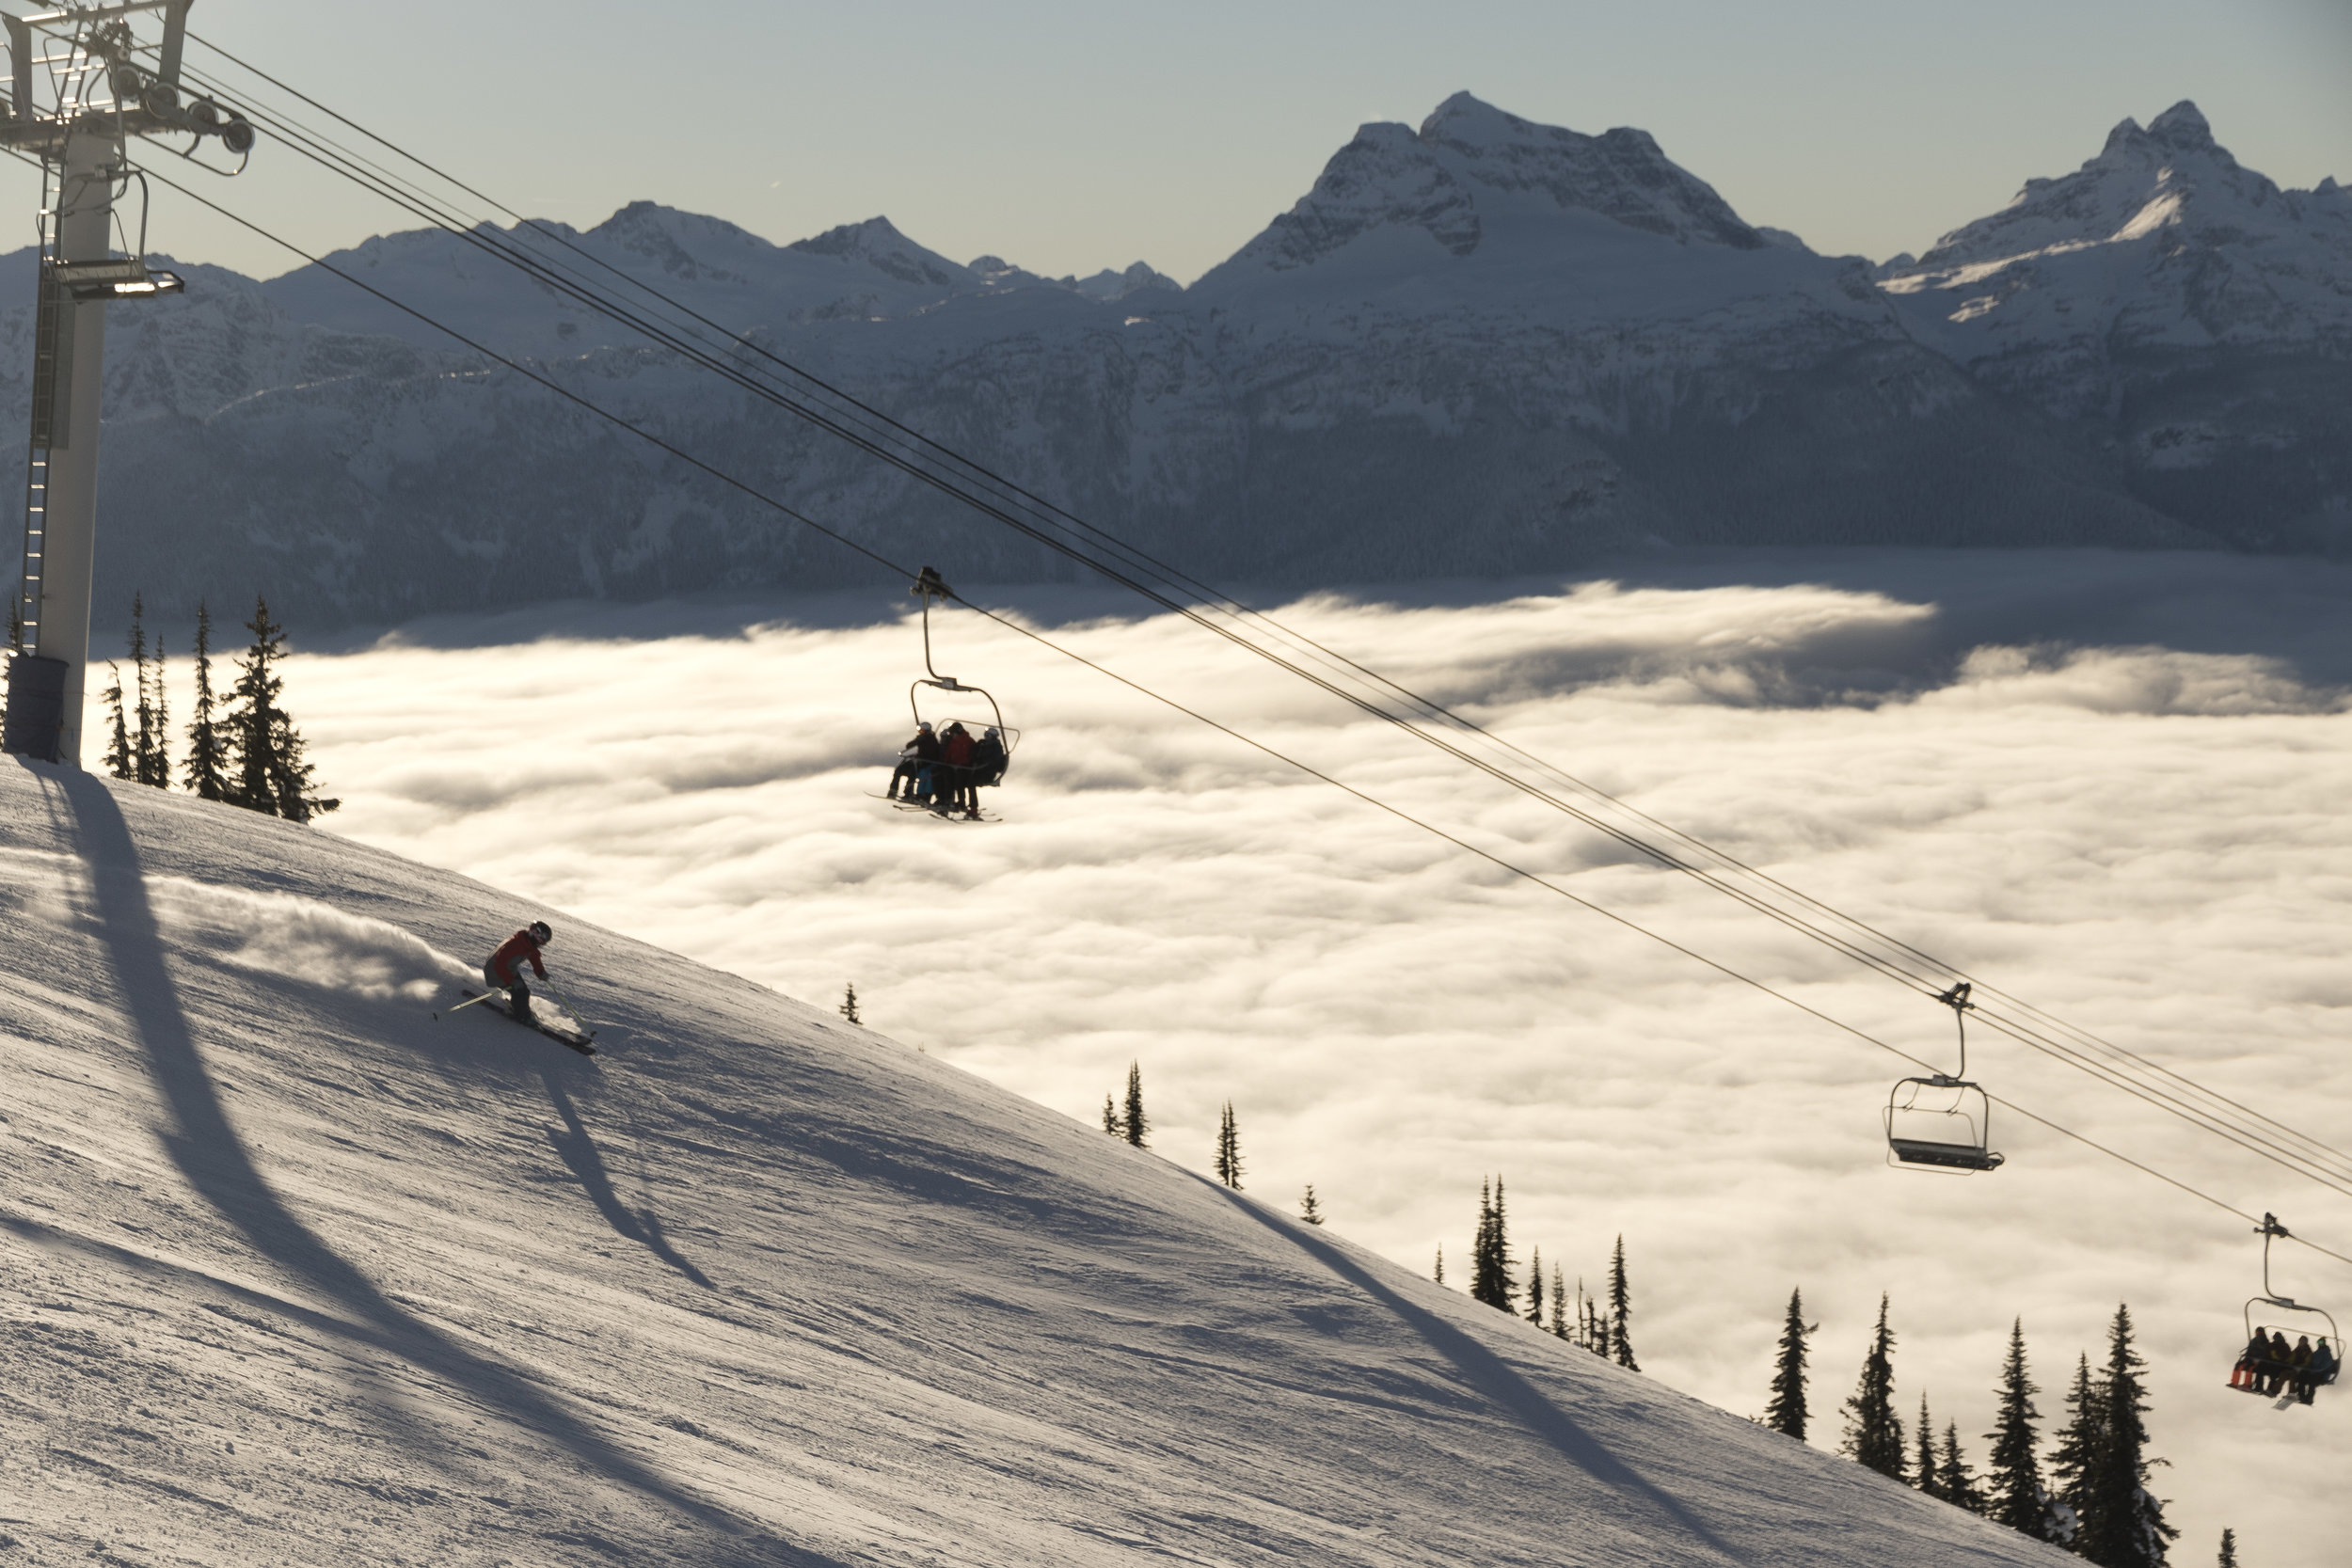 REVELSTOKE MOUNTAIN RESORT - The most skiable vertical in North America